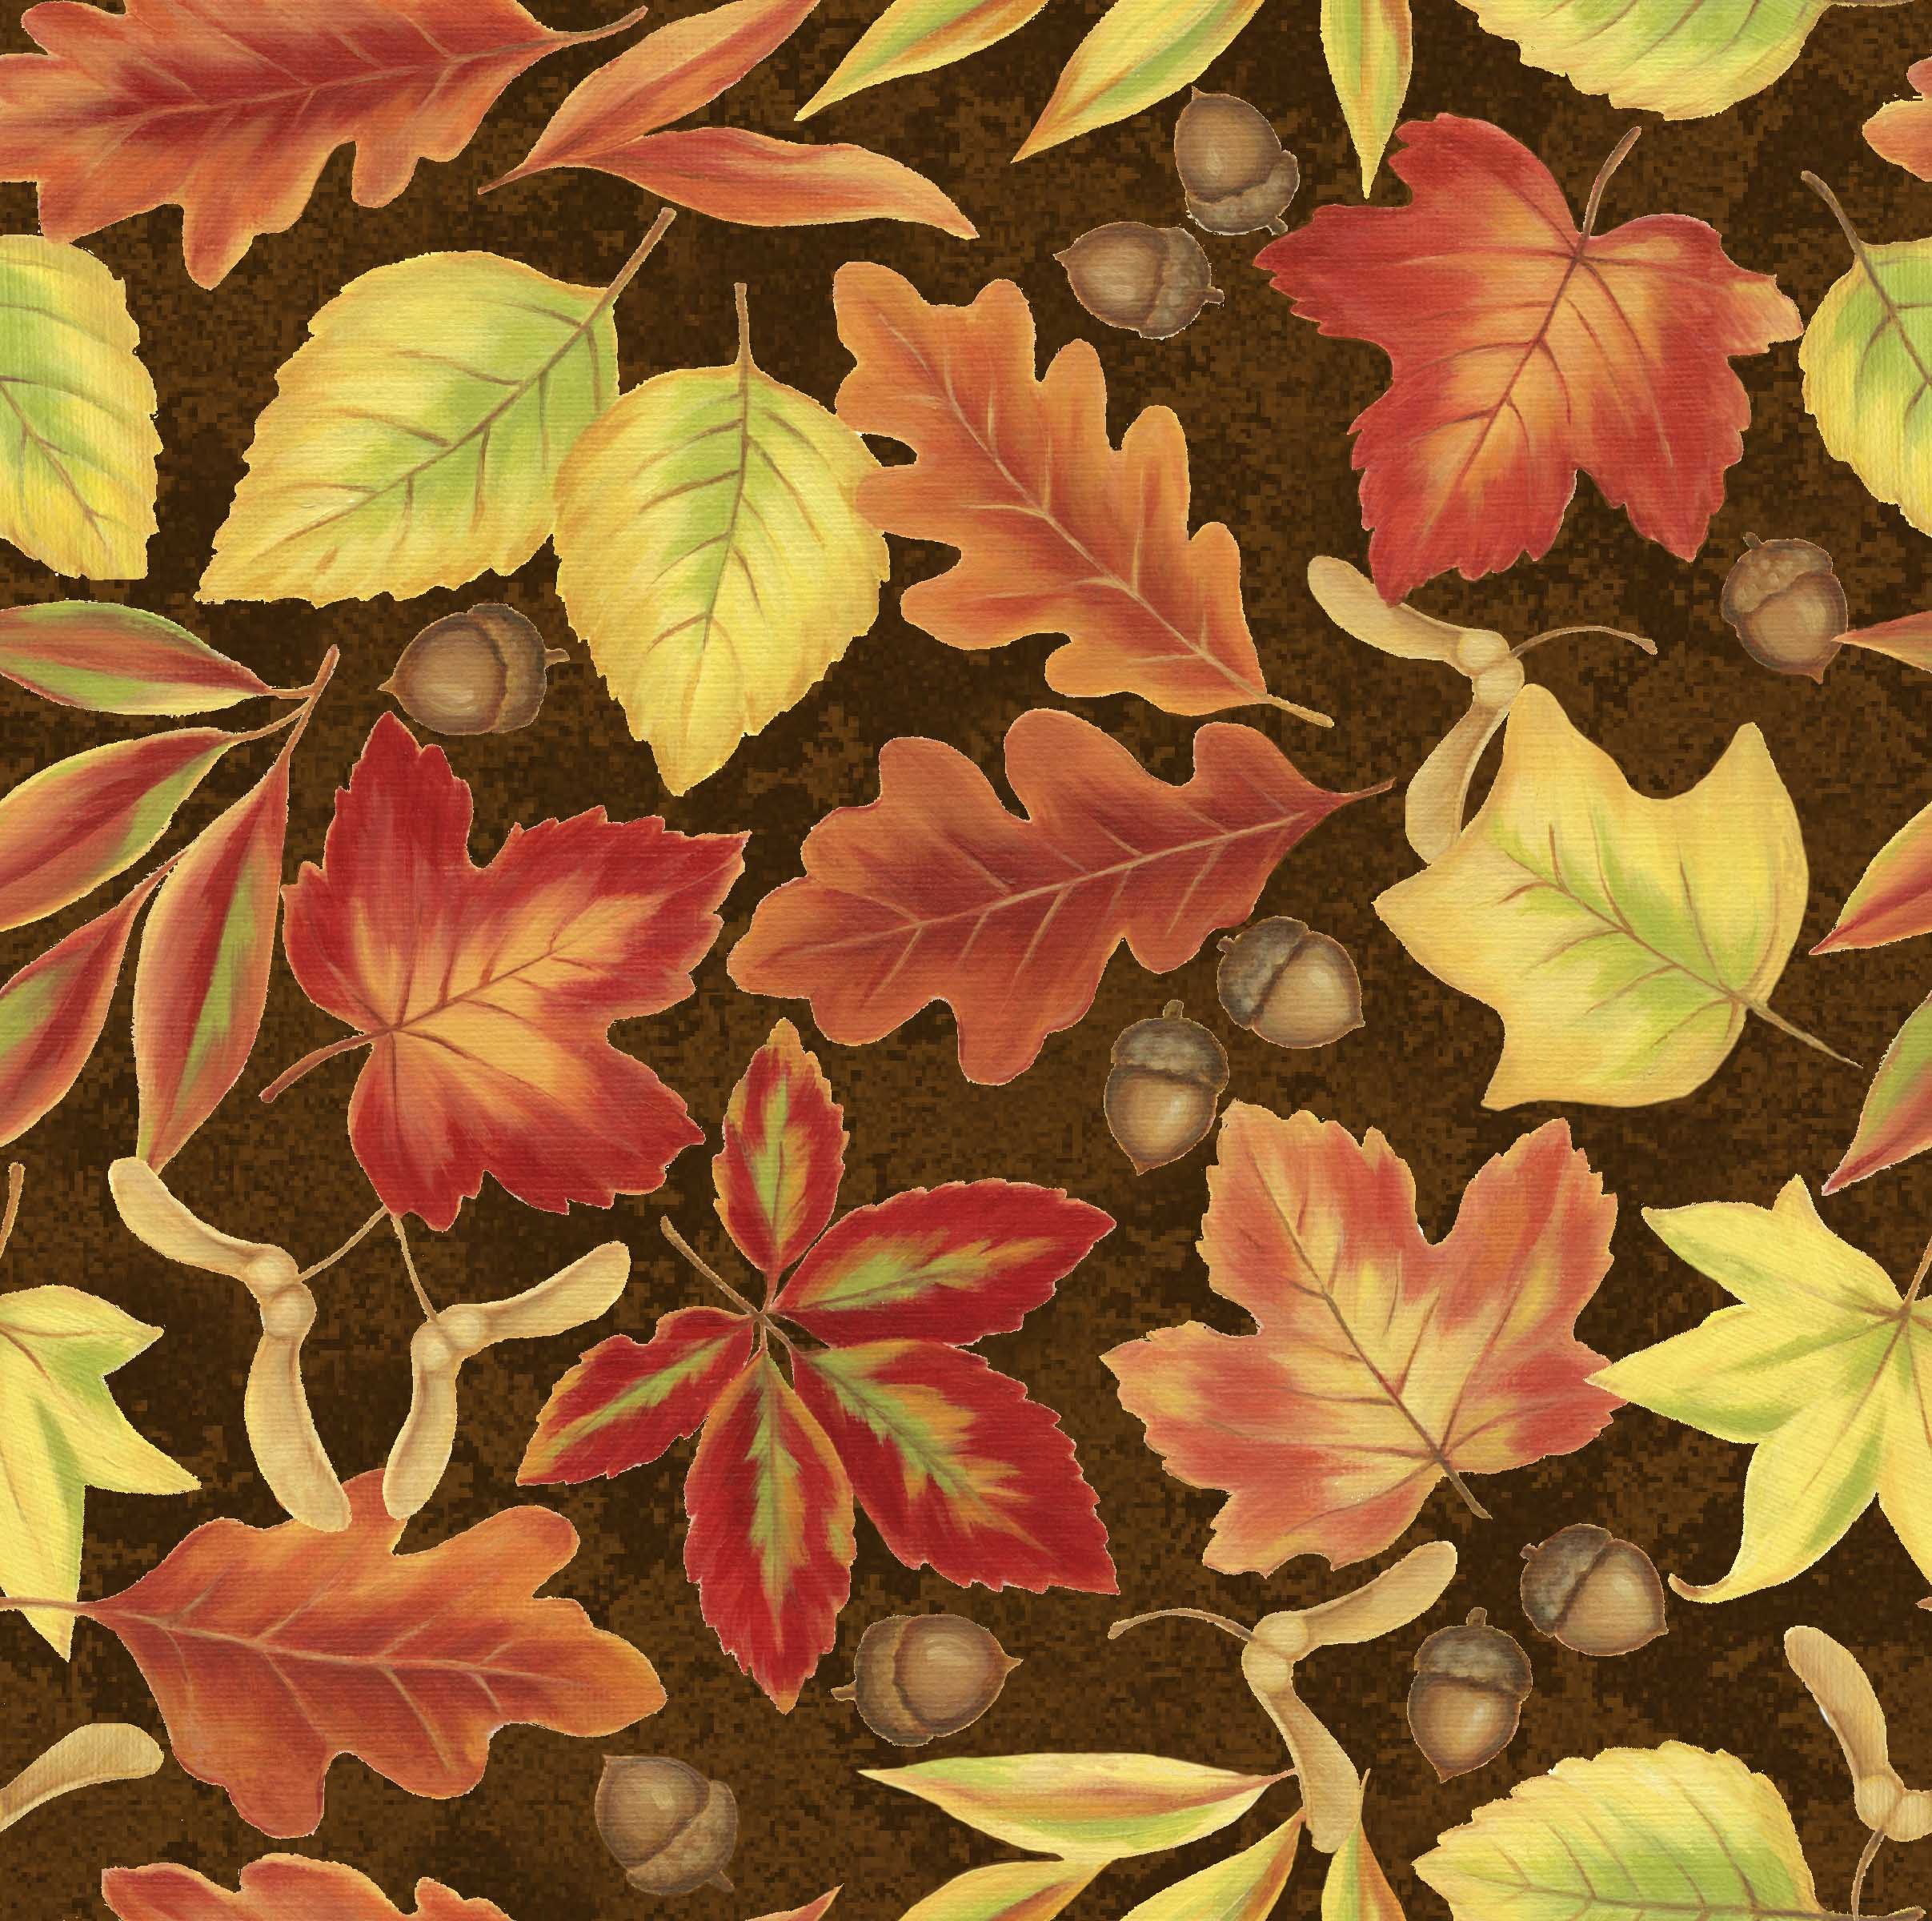 FABRIC EDITIONS, COTTON FABRIC, FAT QUARTER, 18X21, HARVEST FOLIAGE